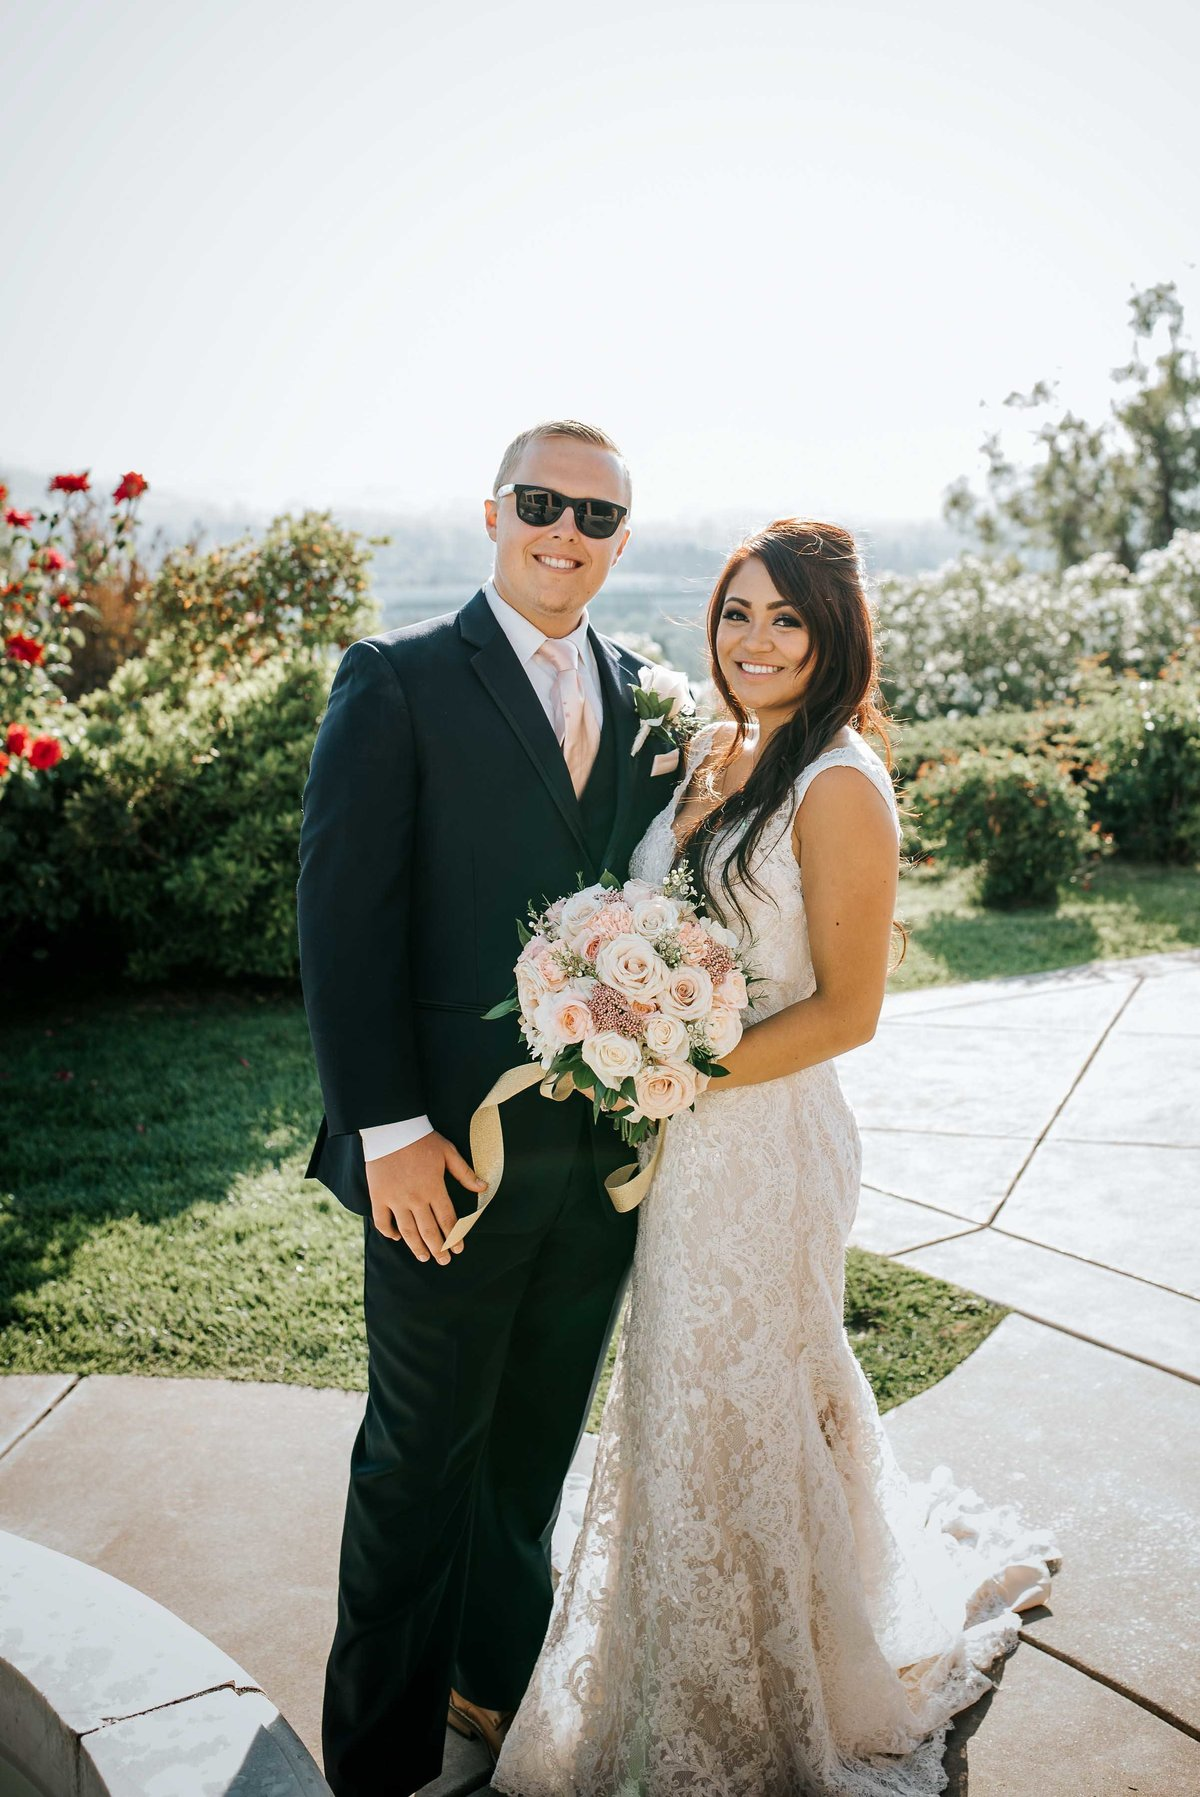 Wondra Photography, Bay Area Wedding & Lifestyle Photographer